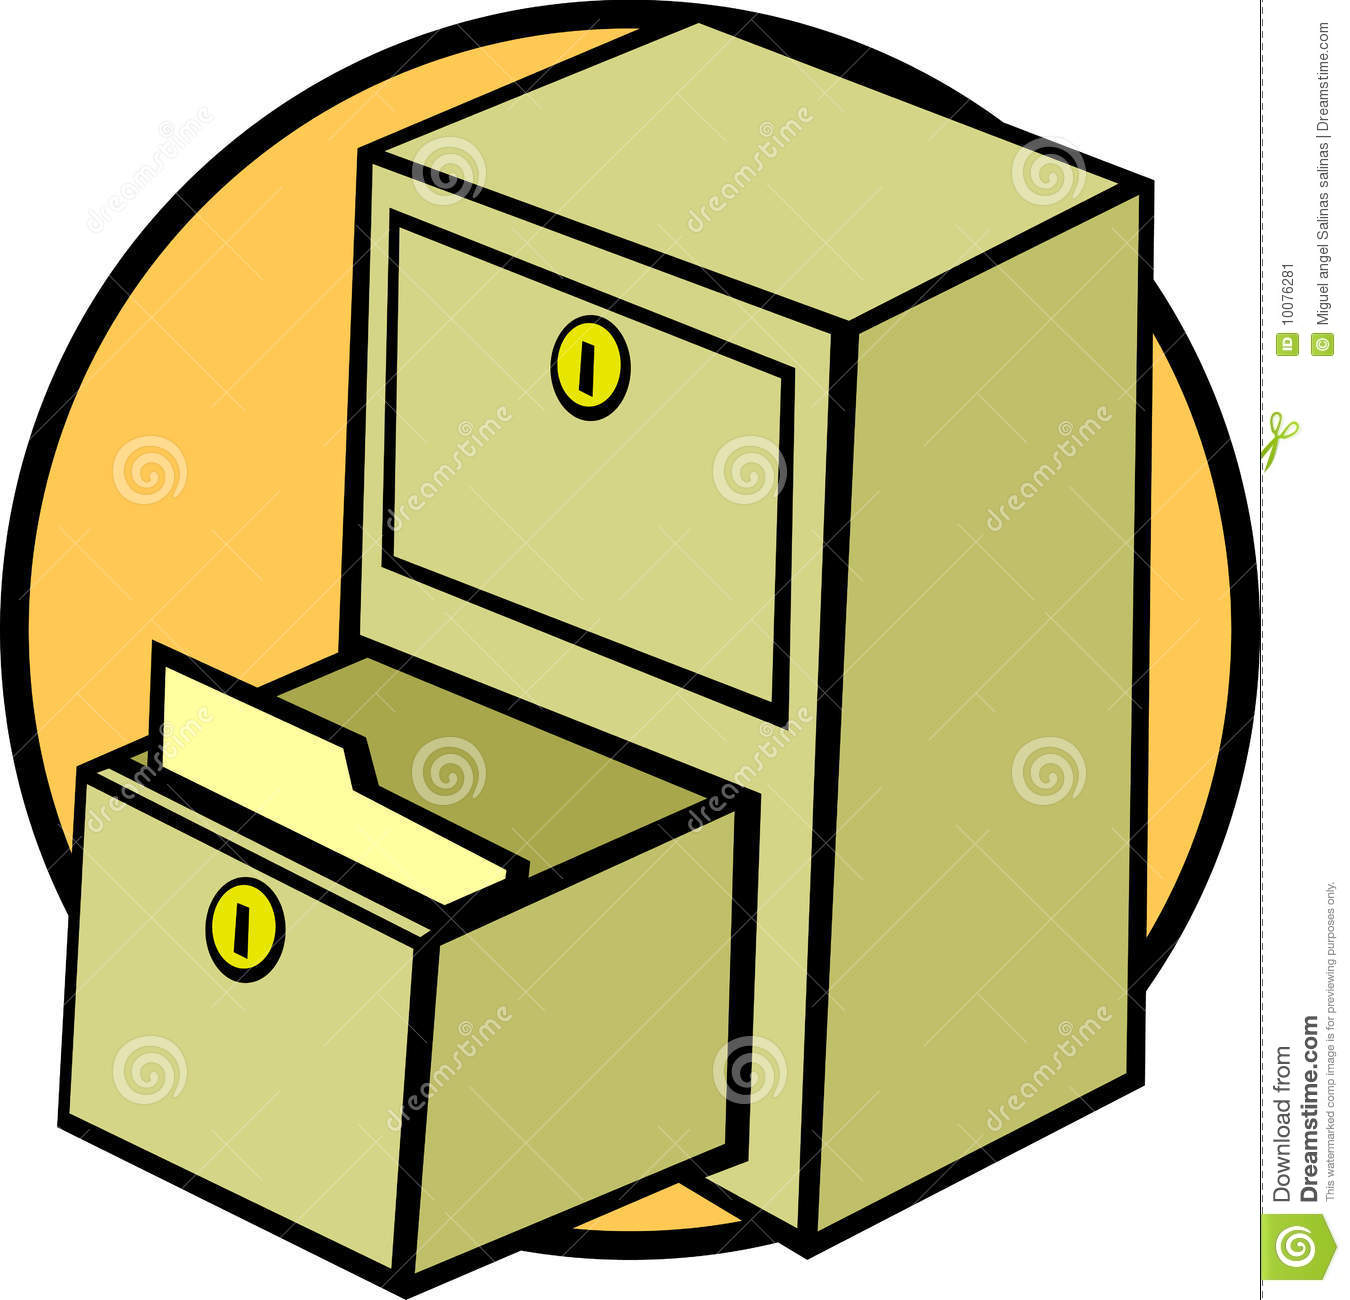 Kitchen Cabinet Clip Art: File Cabinet Drawer And Folder Vector Illustration Stock